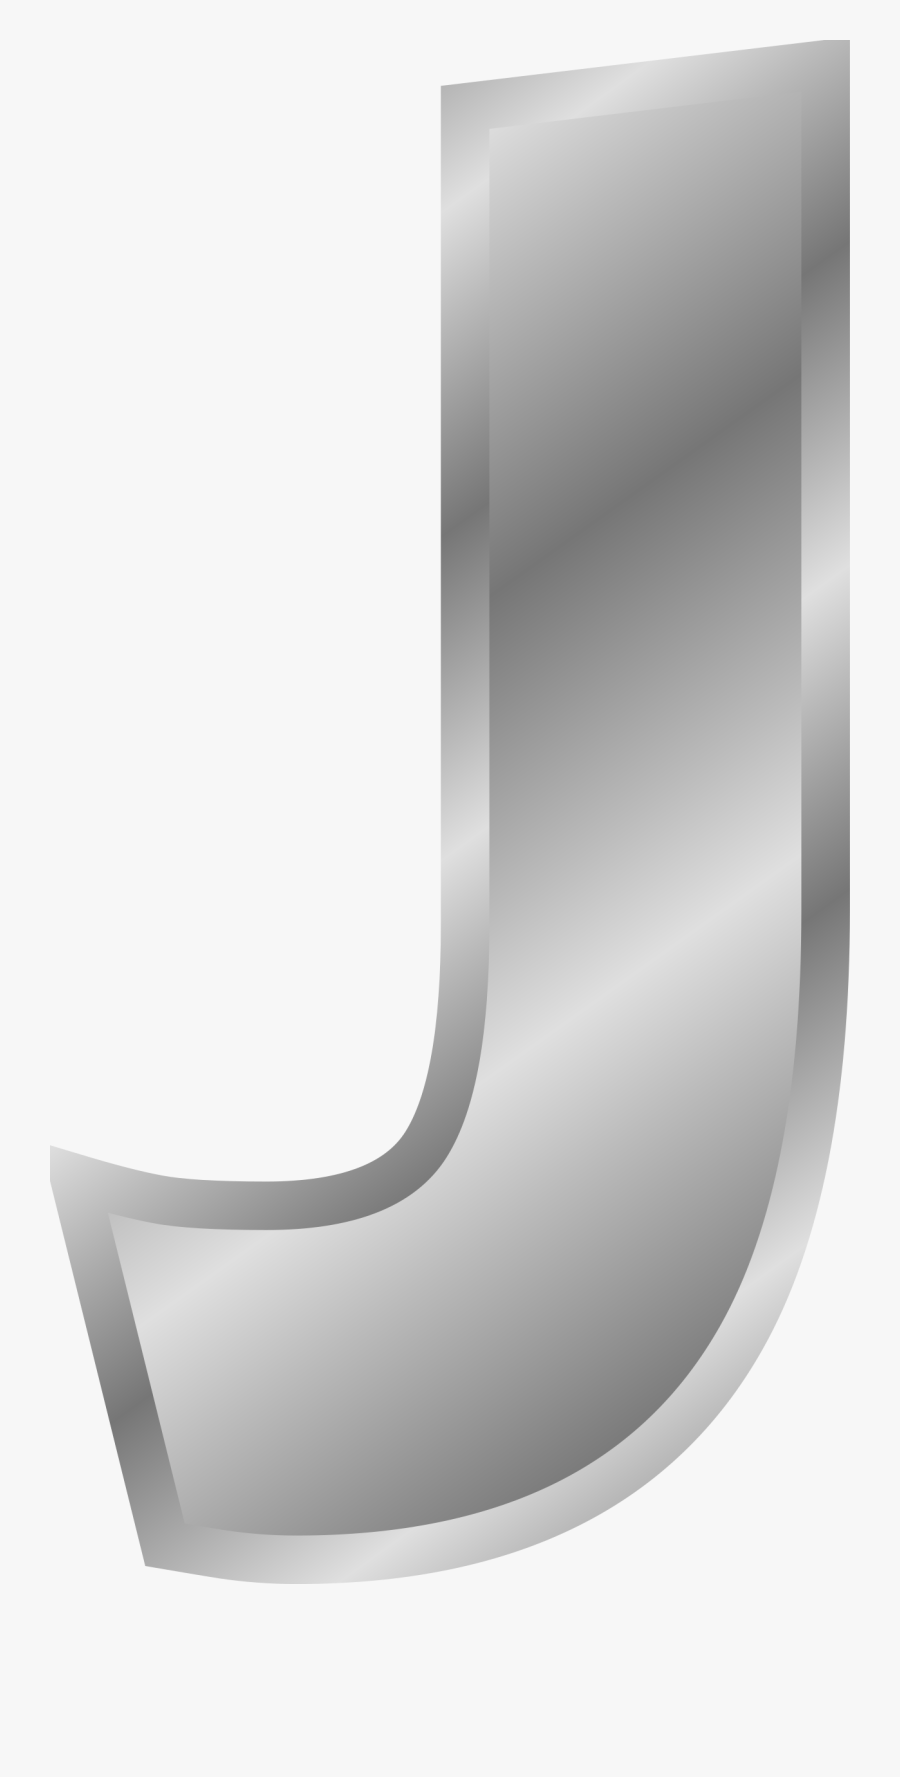 Letter J Png, Download Png Image With Transparent Background, - Alphabet J In Silver, Transparent Clipart